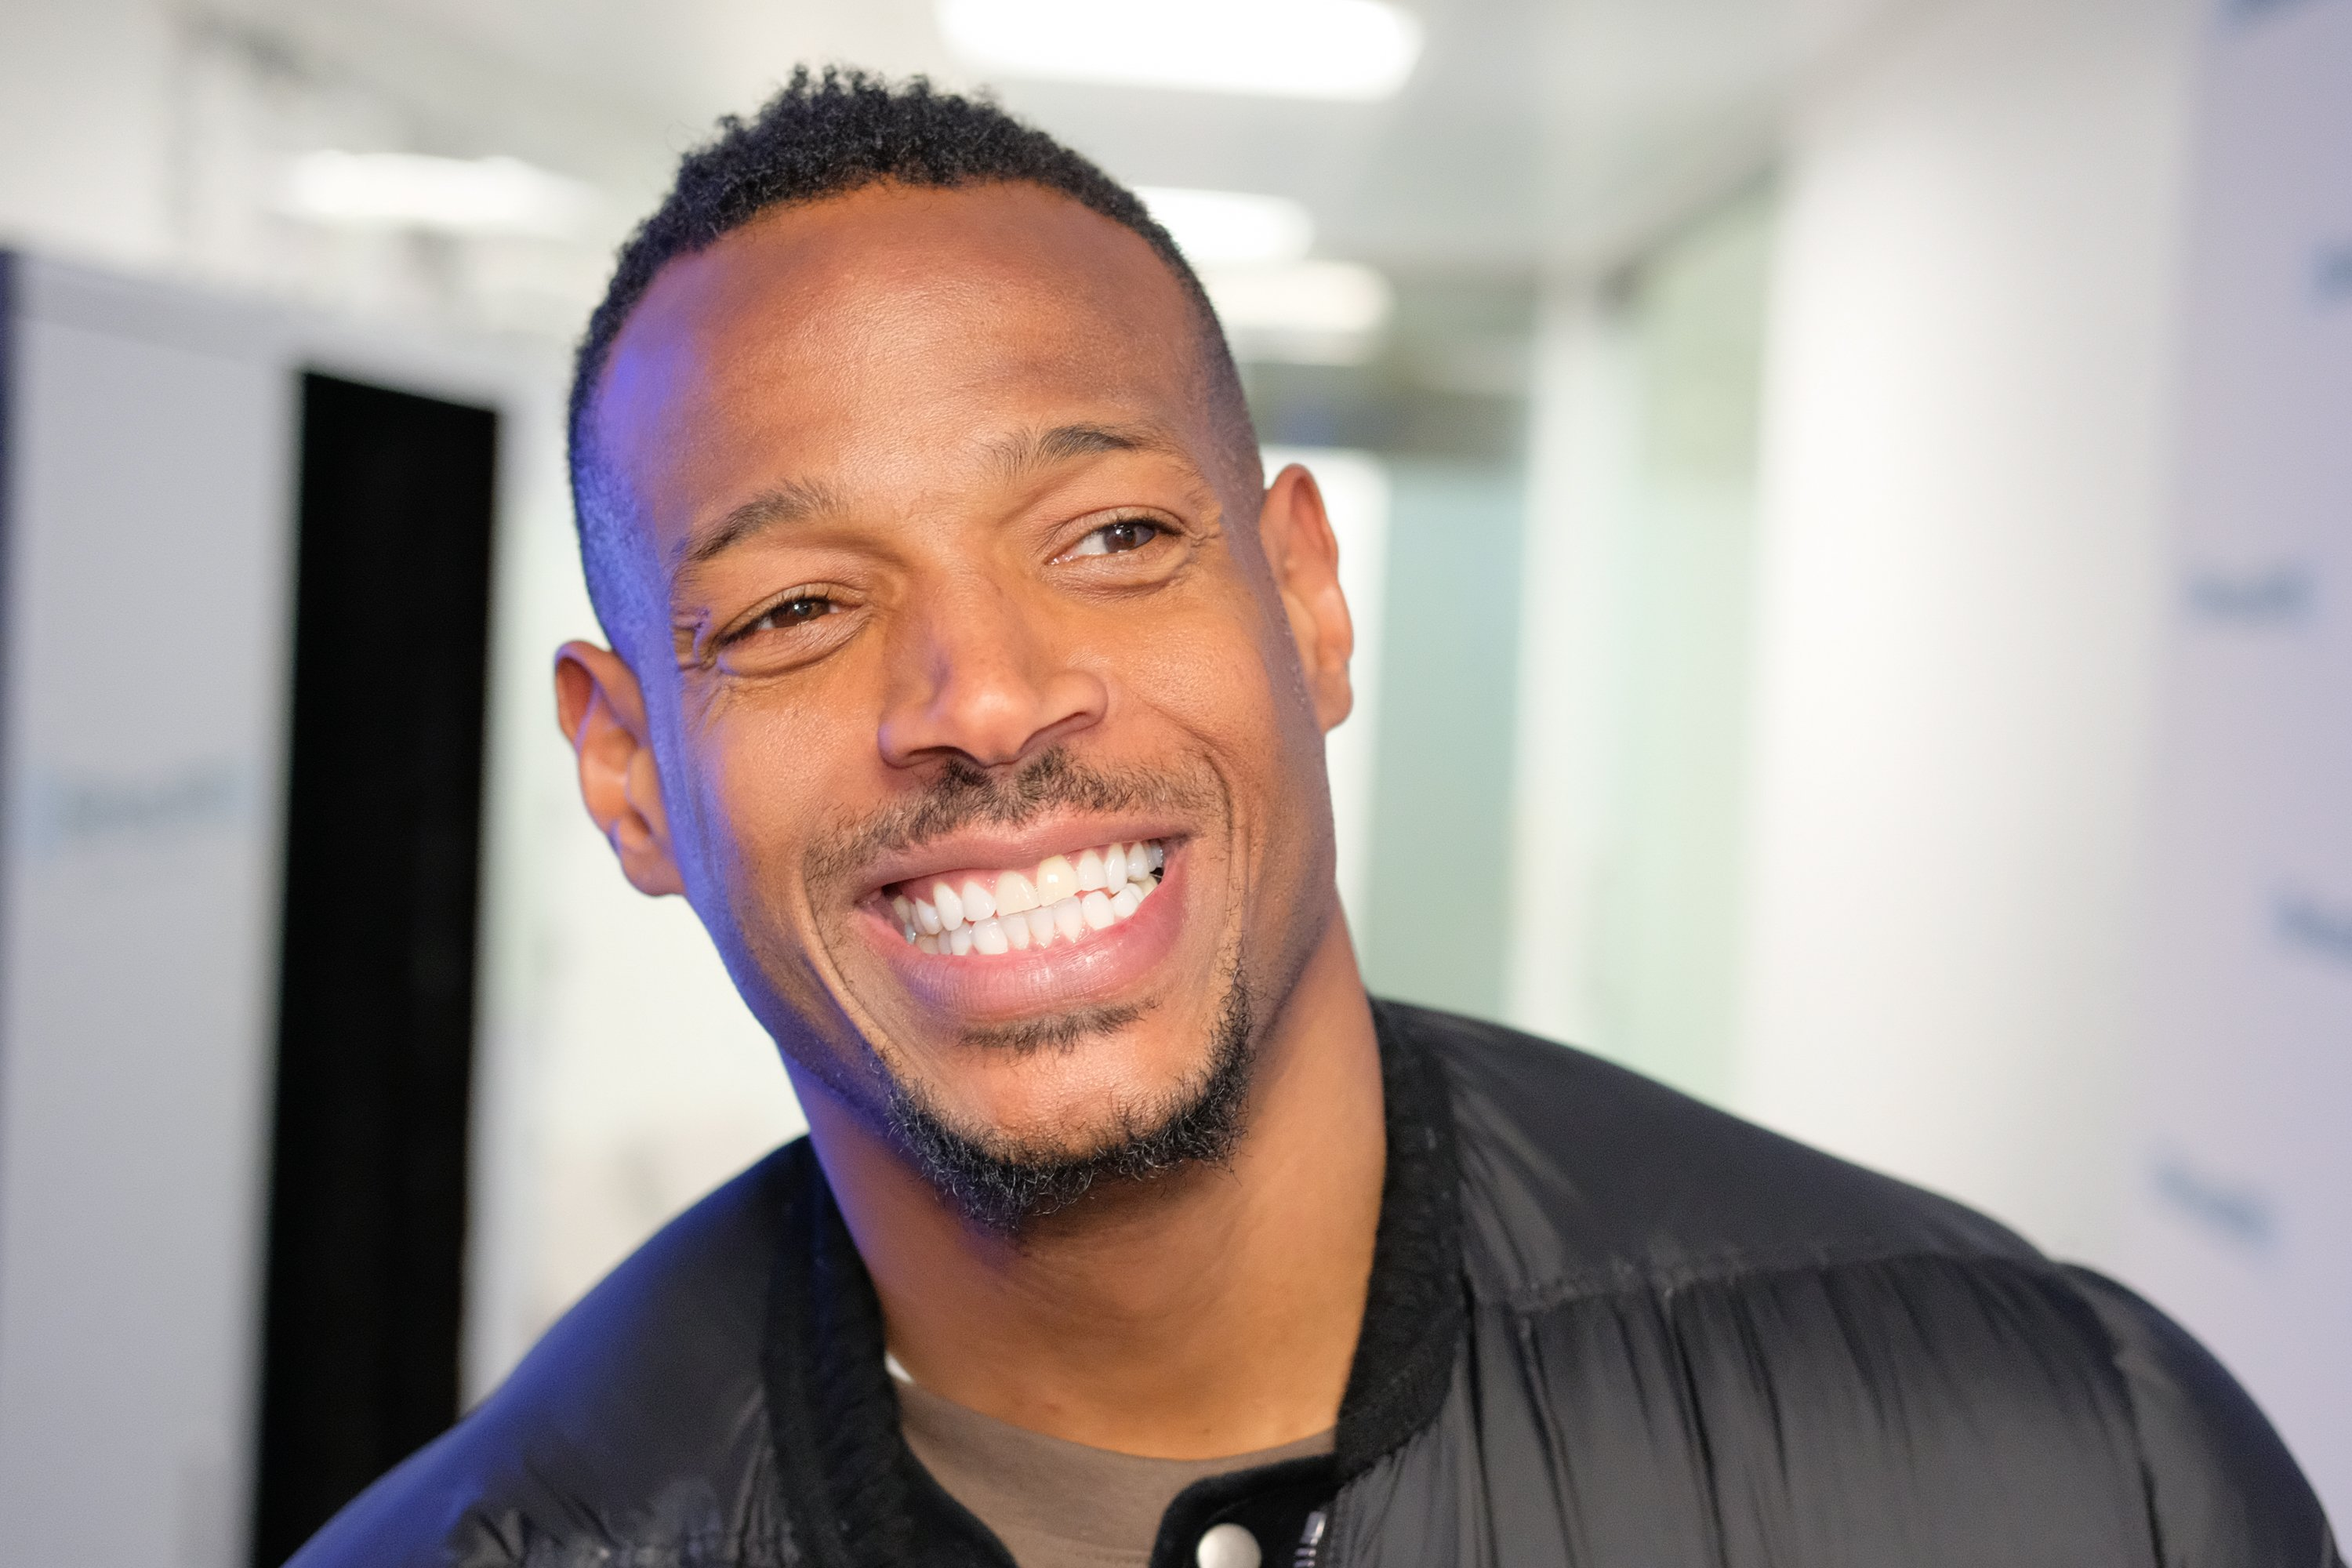 Marlon Wayans at the SiriusXM Studios on March 2, 2018 in New York City. | Source: Getty Images